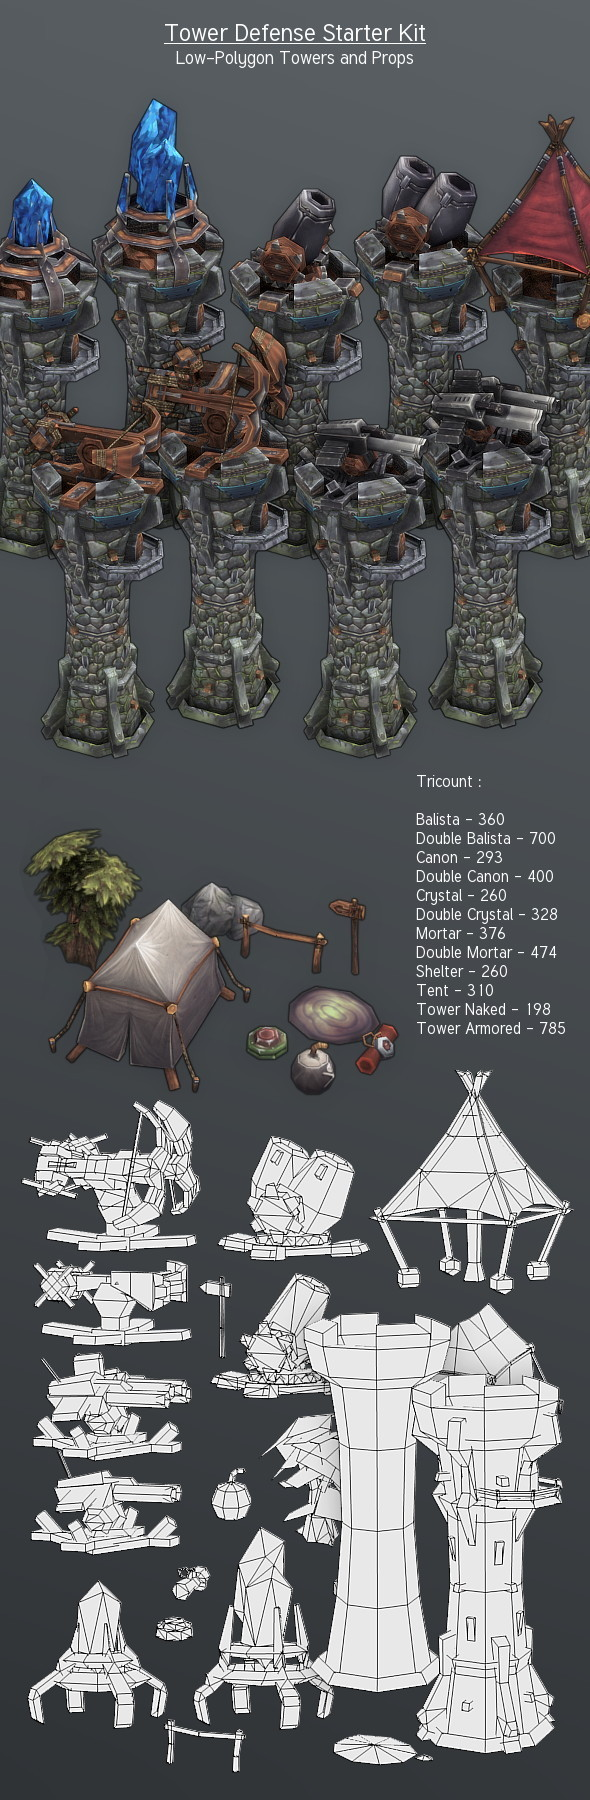 3DOcean LowPoly Tower Defense Starter Kit 4390955